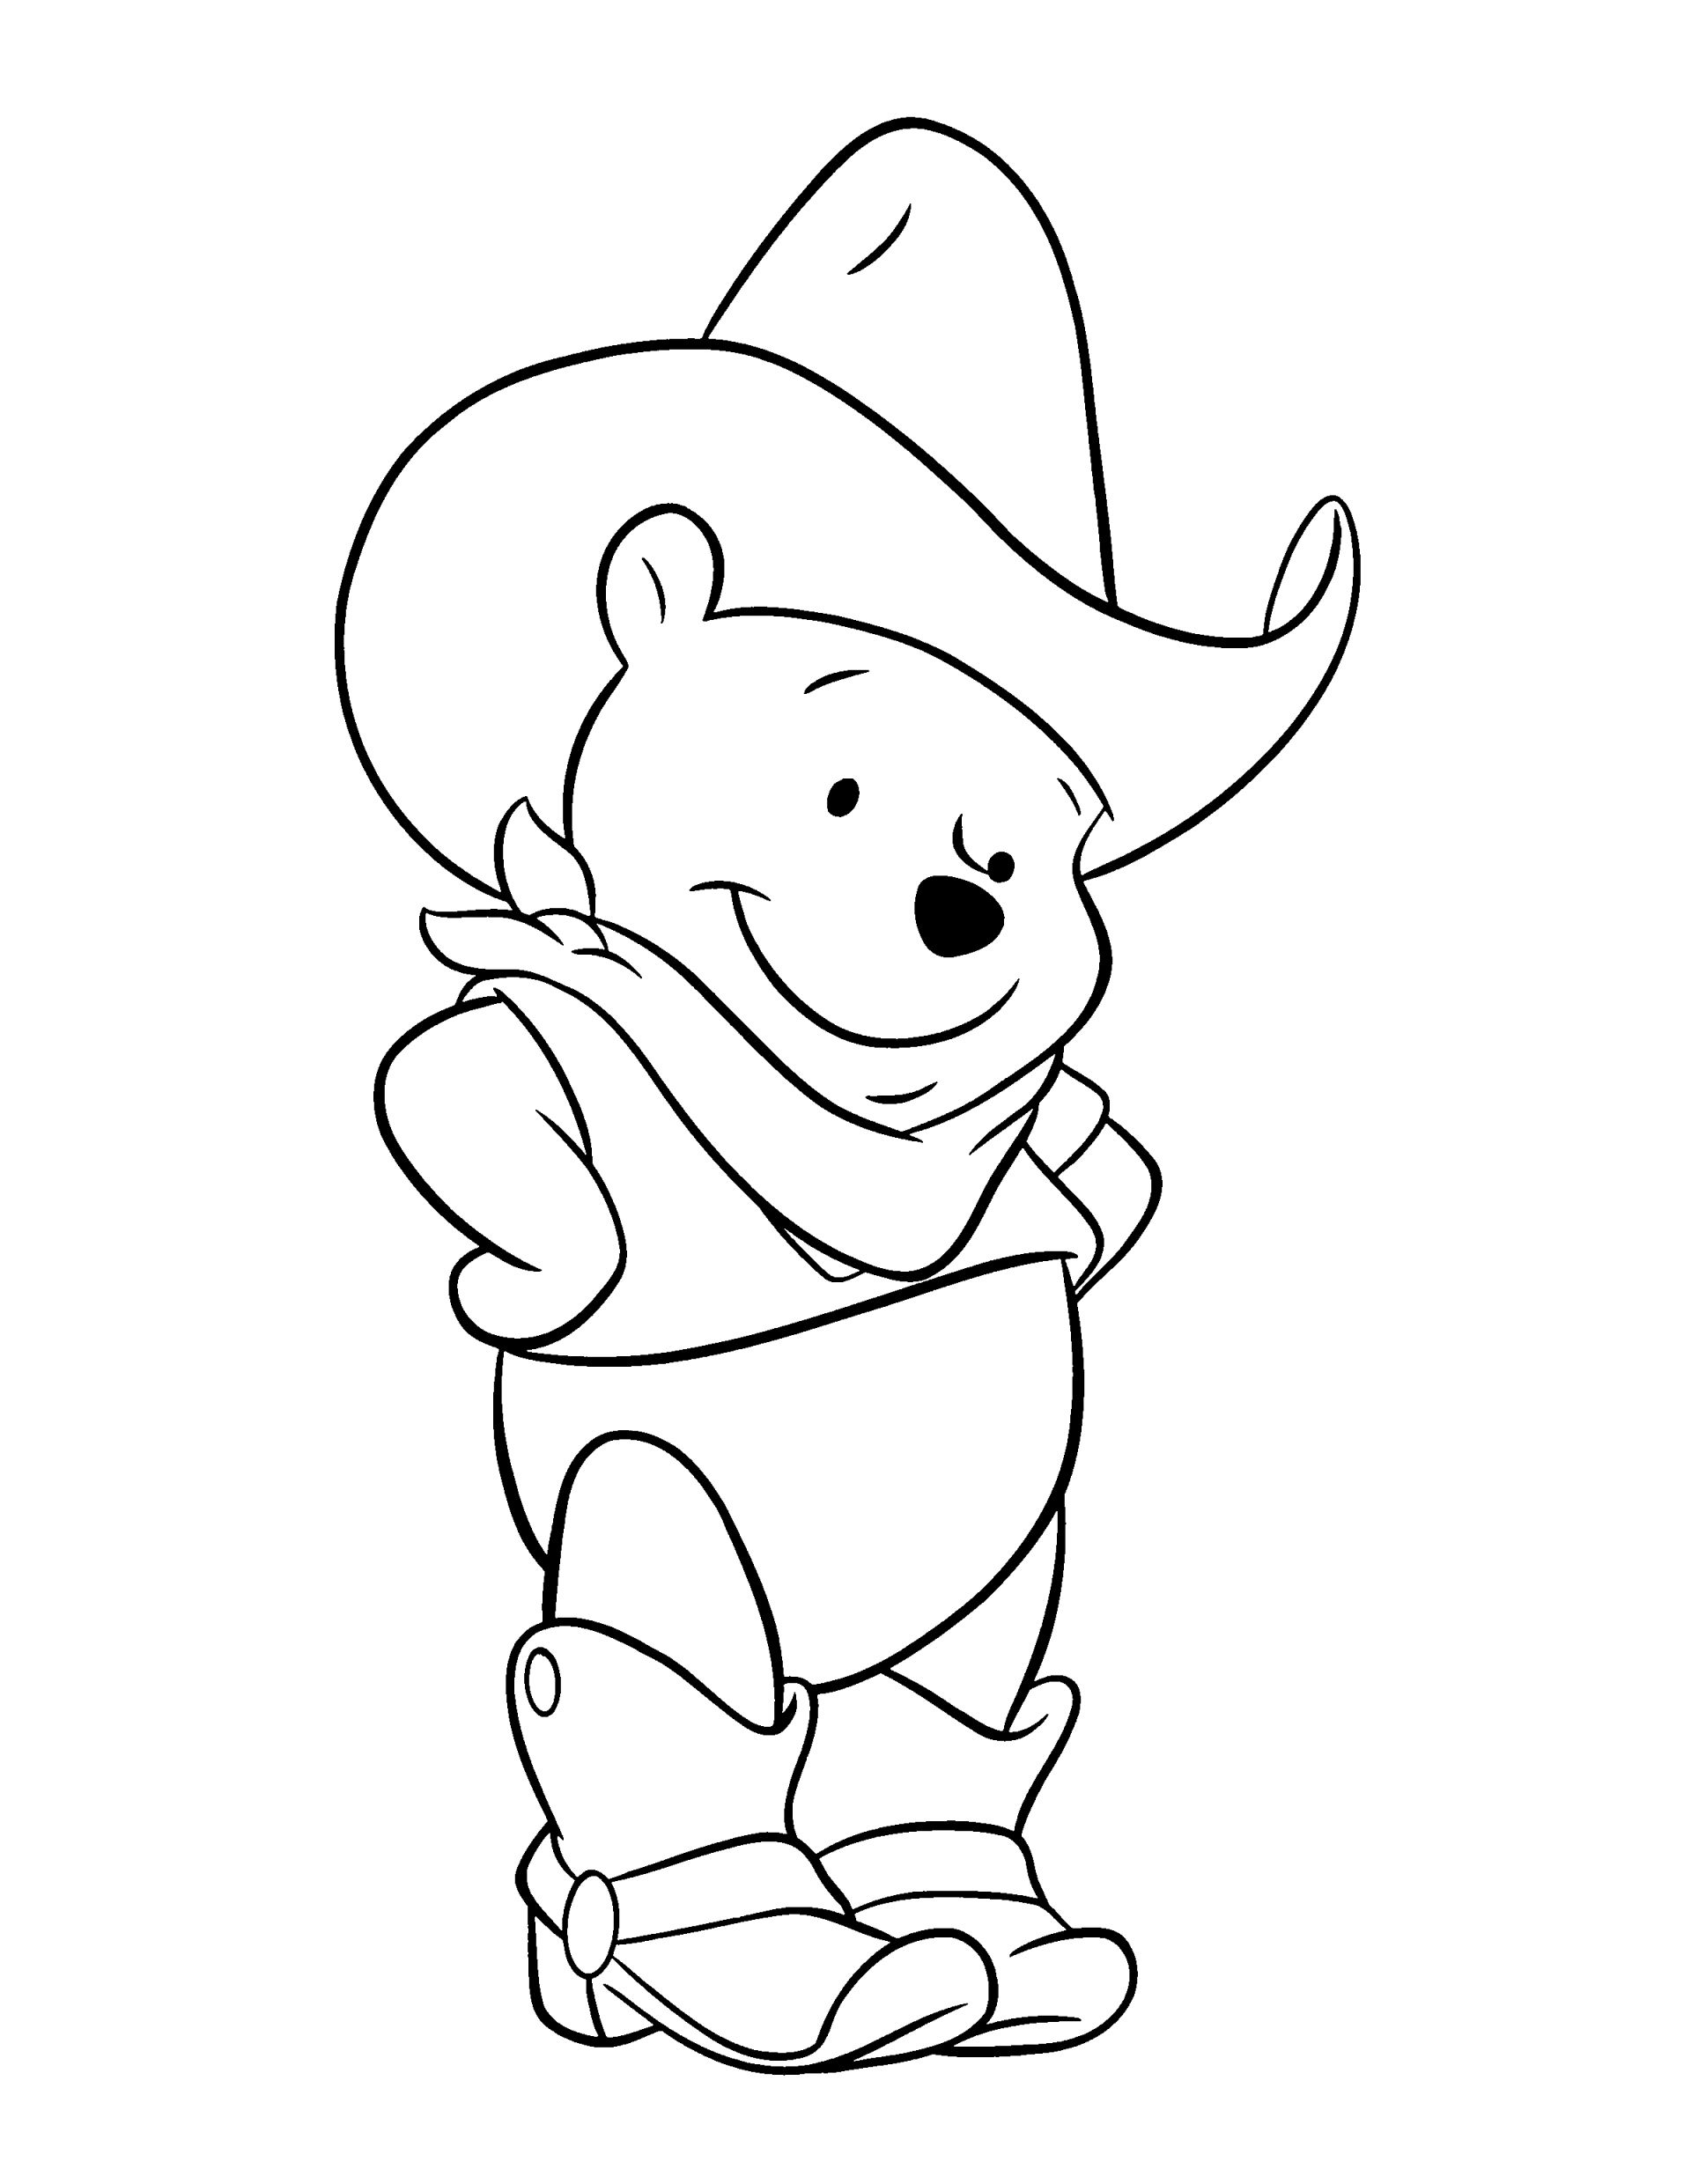 winnie the pooh coloring pages car cartoon cartoons color - Cartoons Coloring Pages